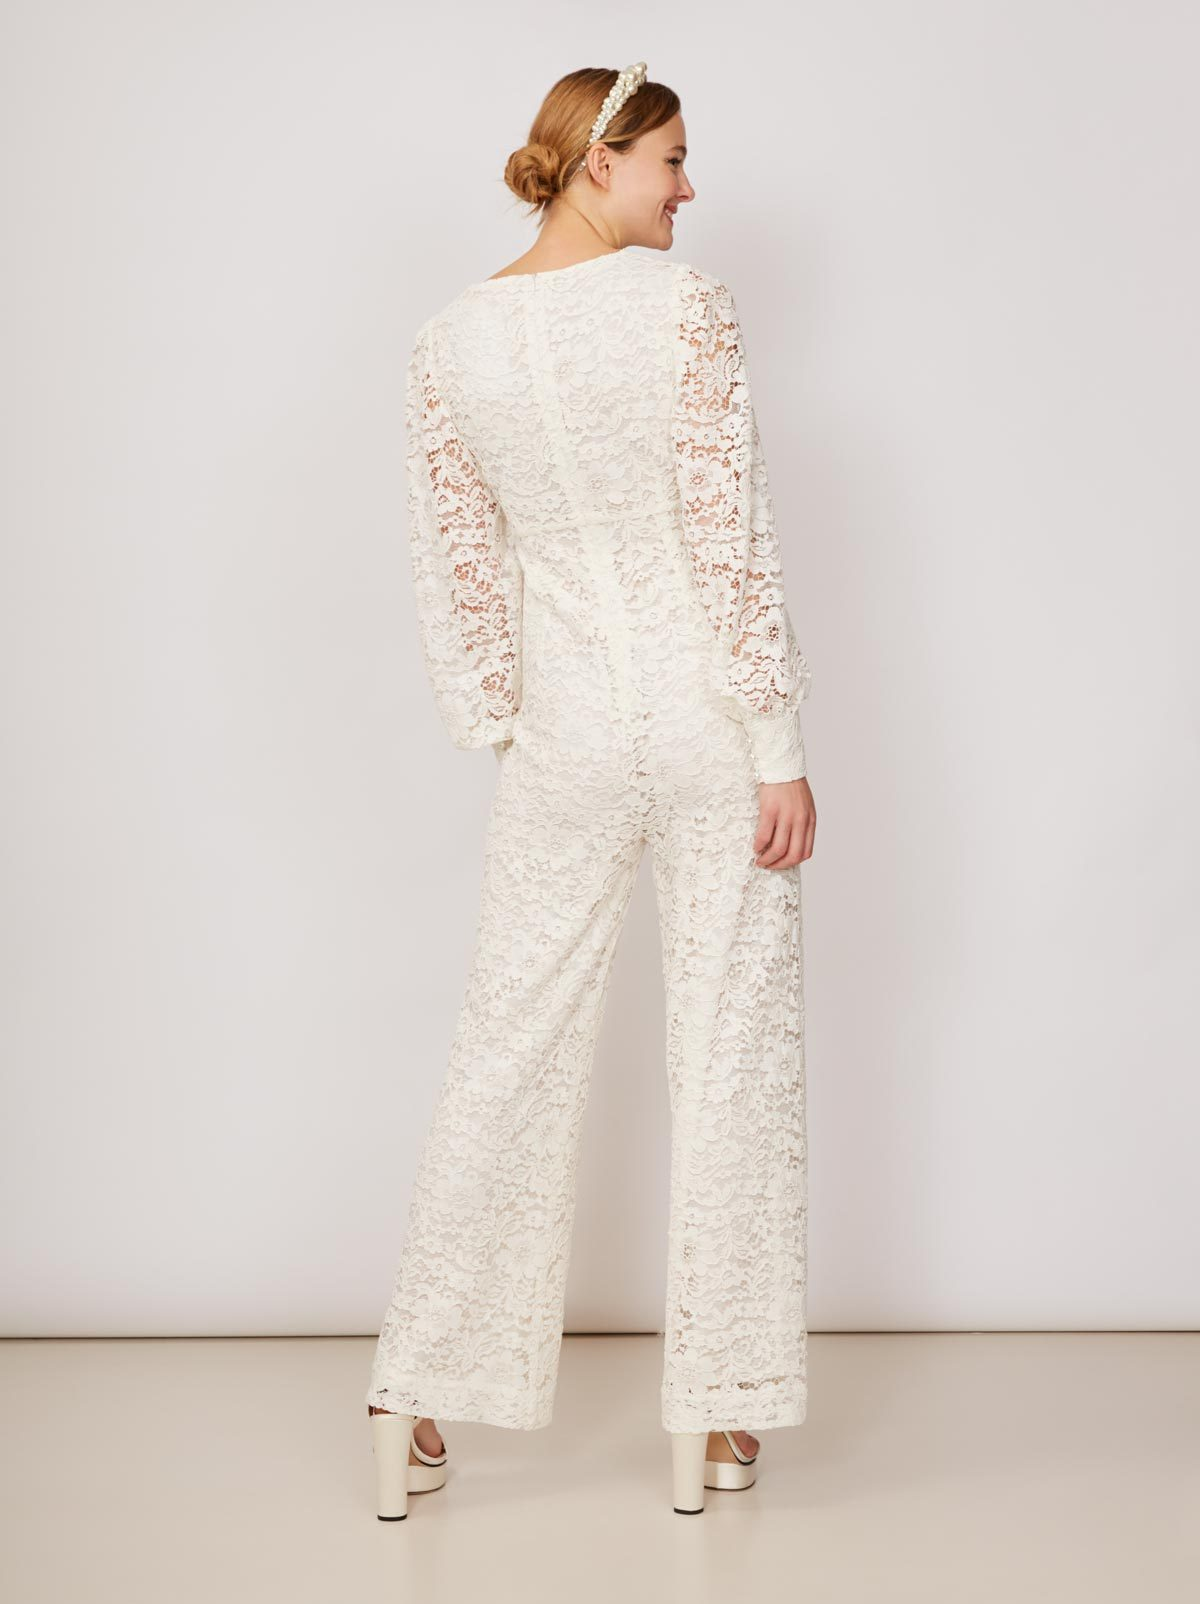 Kahlo Ivory Lace Jumpsuit by KITRI Studio